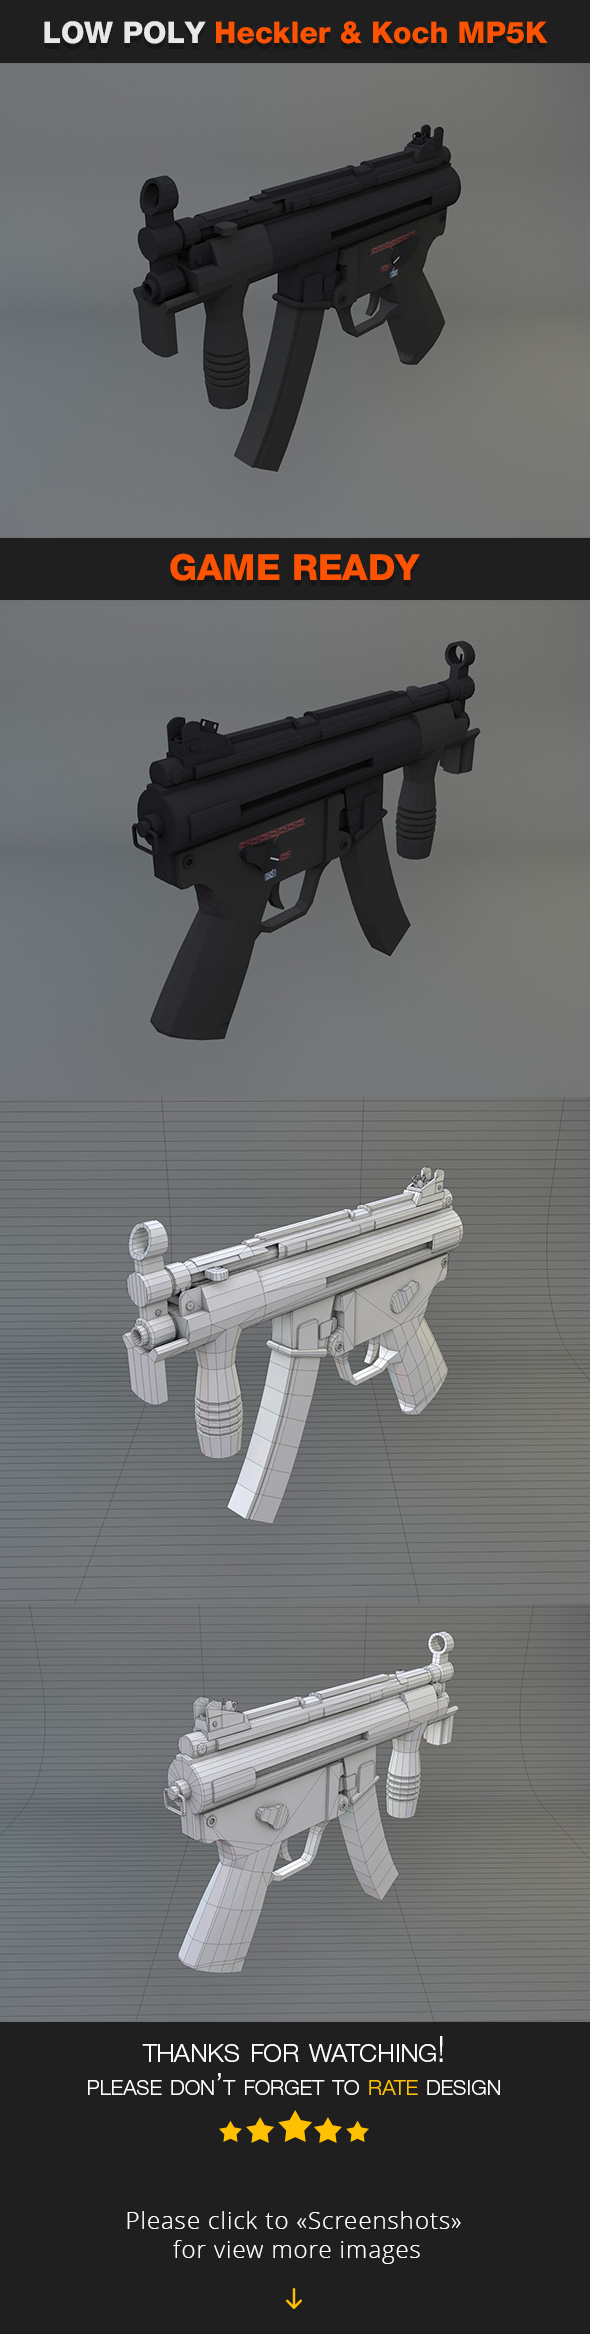 Low Poly Heckler & Koch MP5K - 3DOcean Item for Sale